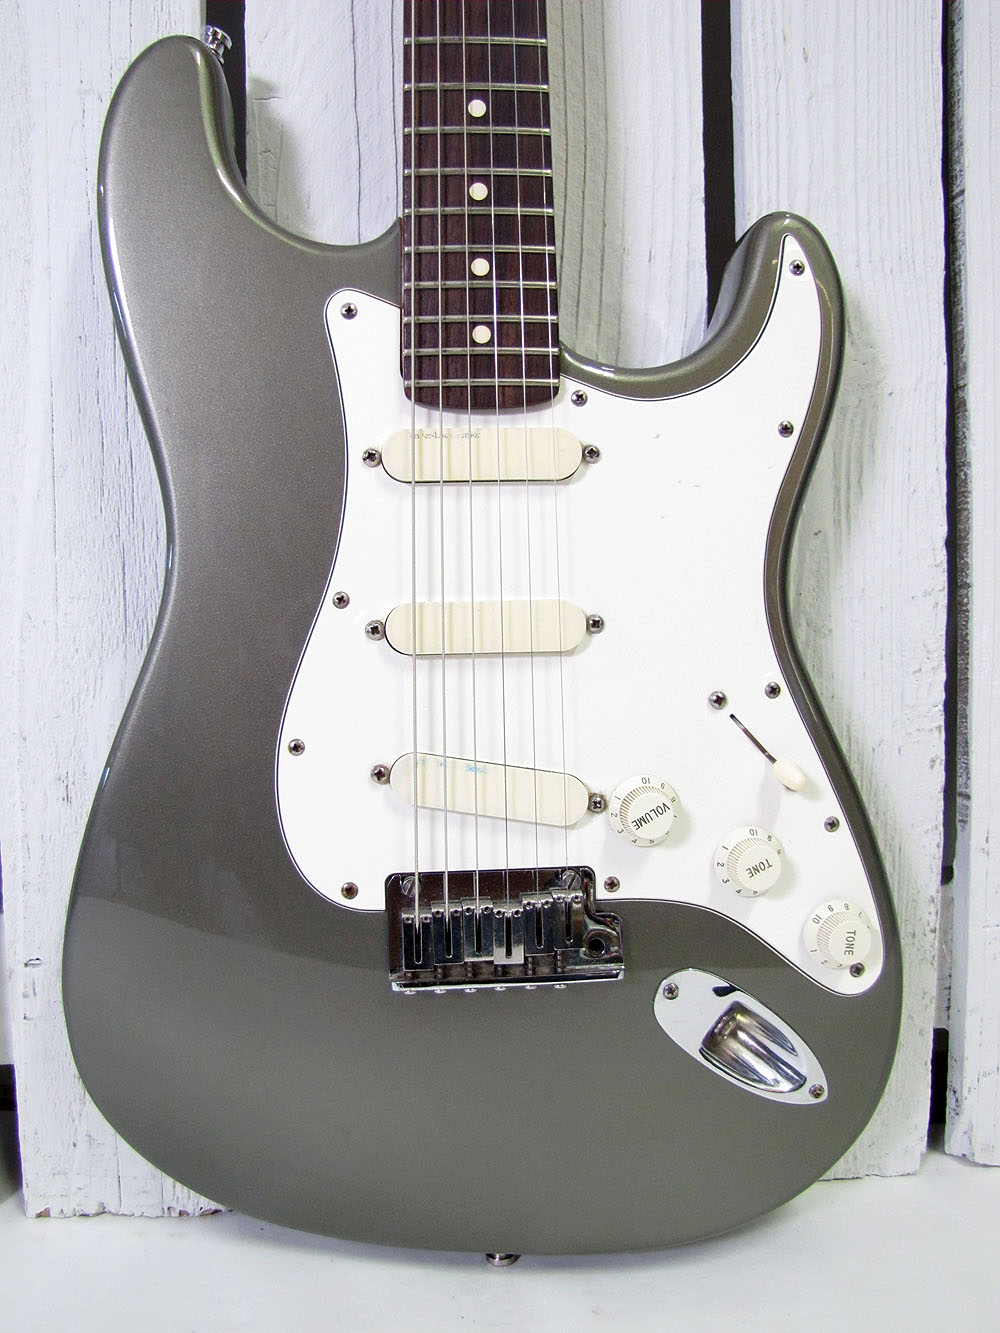 1987 fender stratocaster strat plus electric guitar